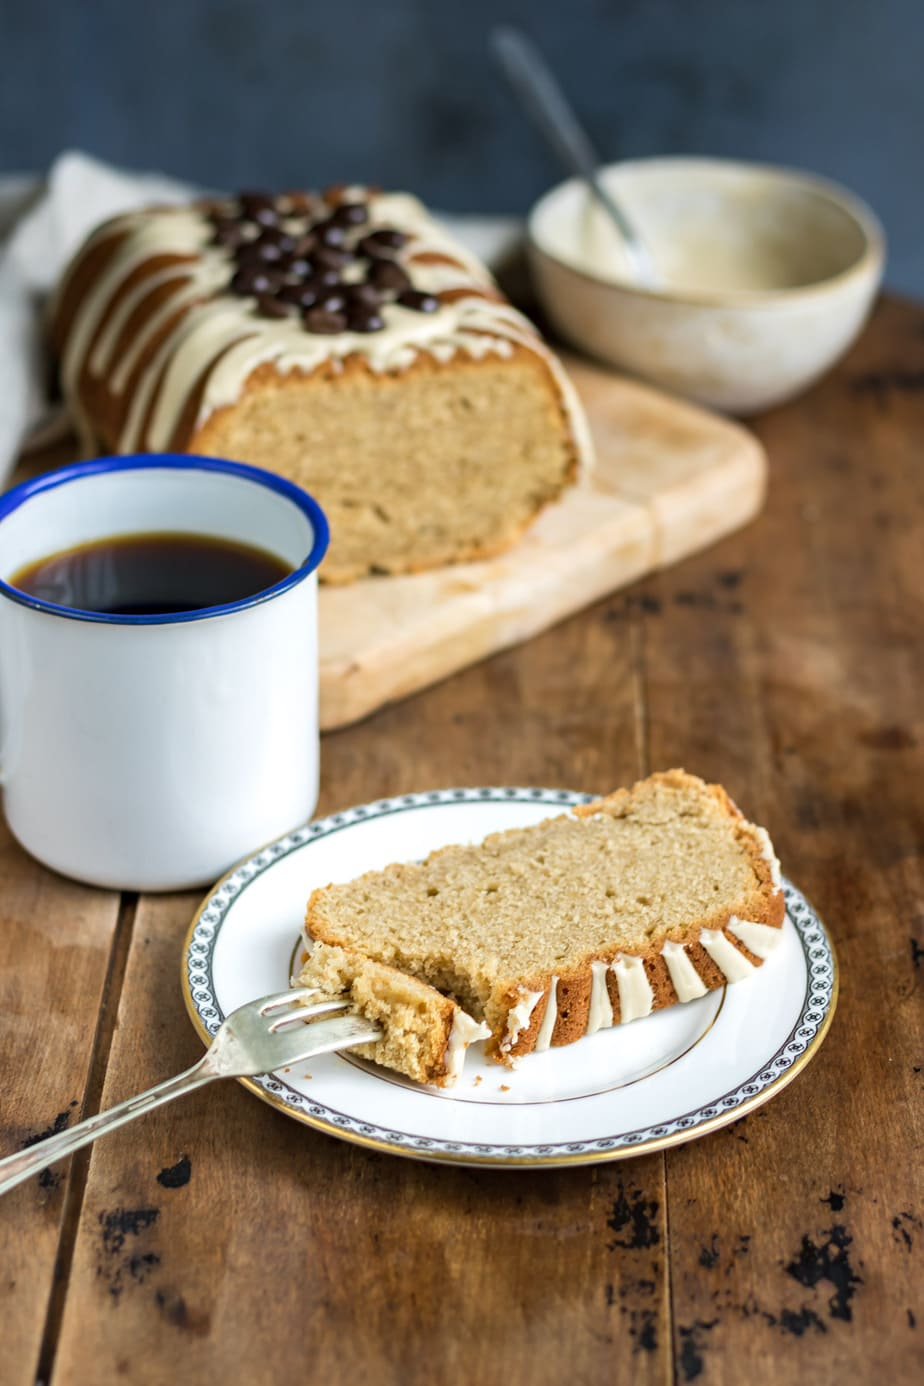 Slice of loaf cake on a plate, next to a coffee and the rest of the cake.